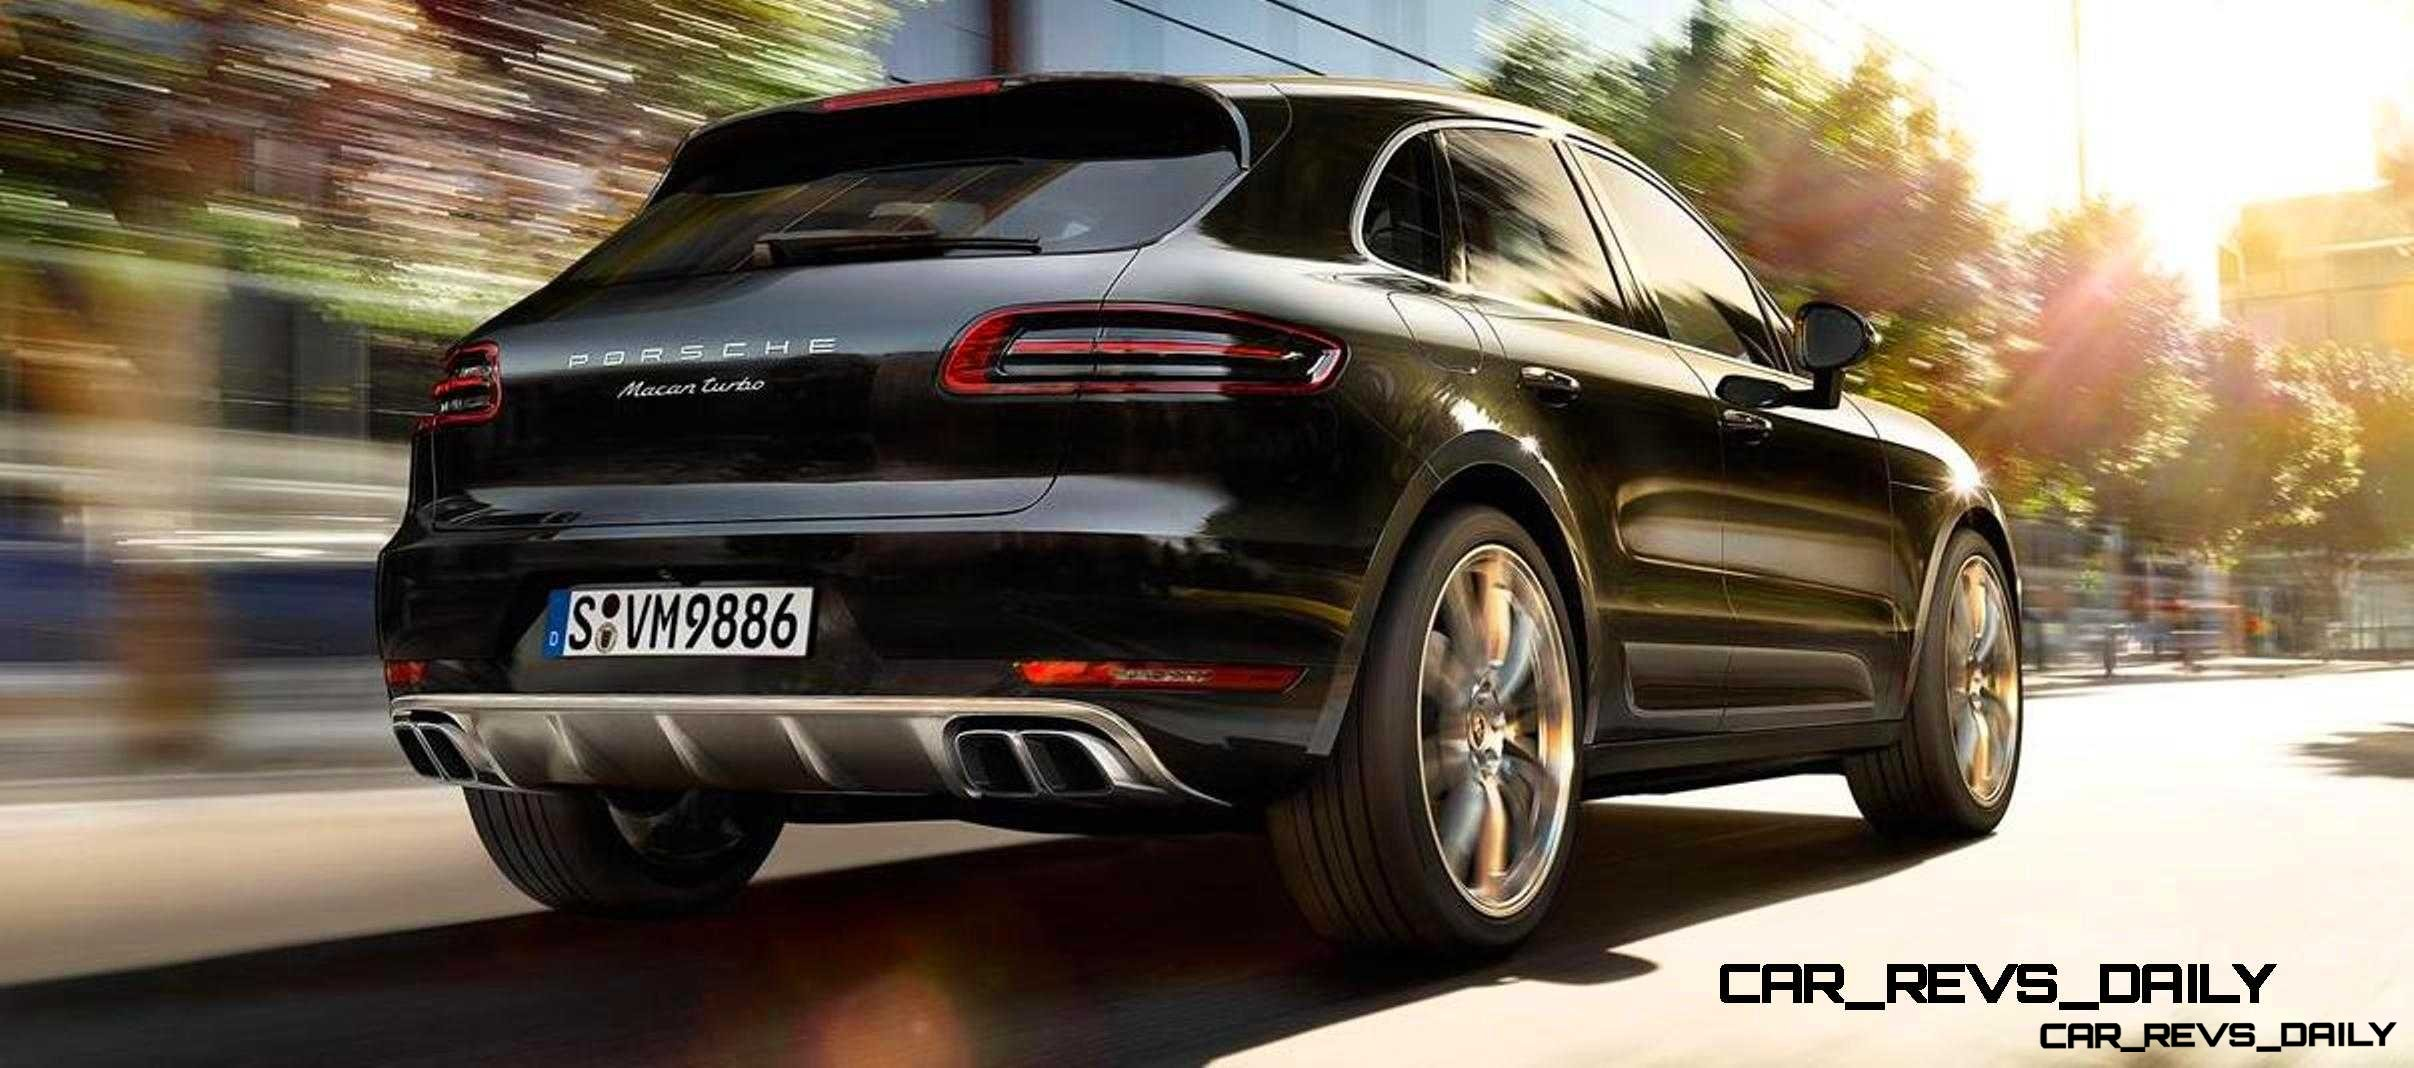 2015 Porsche Macan - Latest Images - CarRevsDaily.com 88